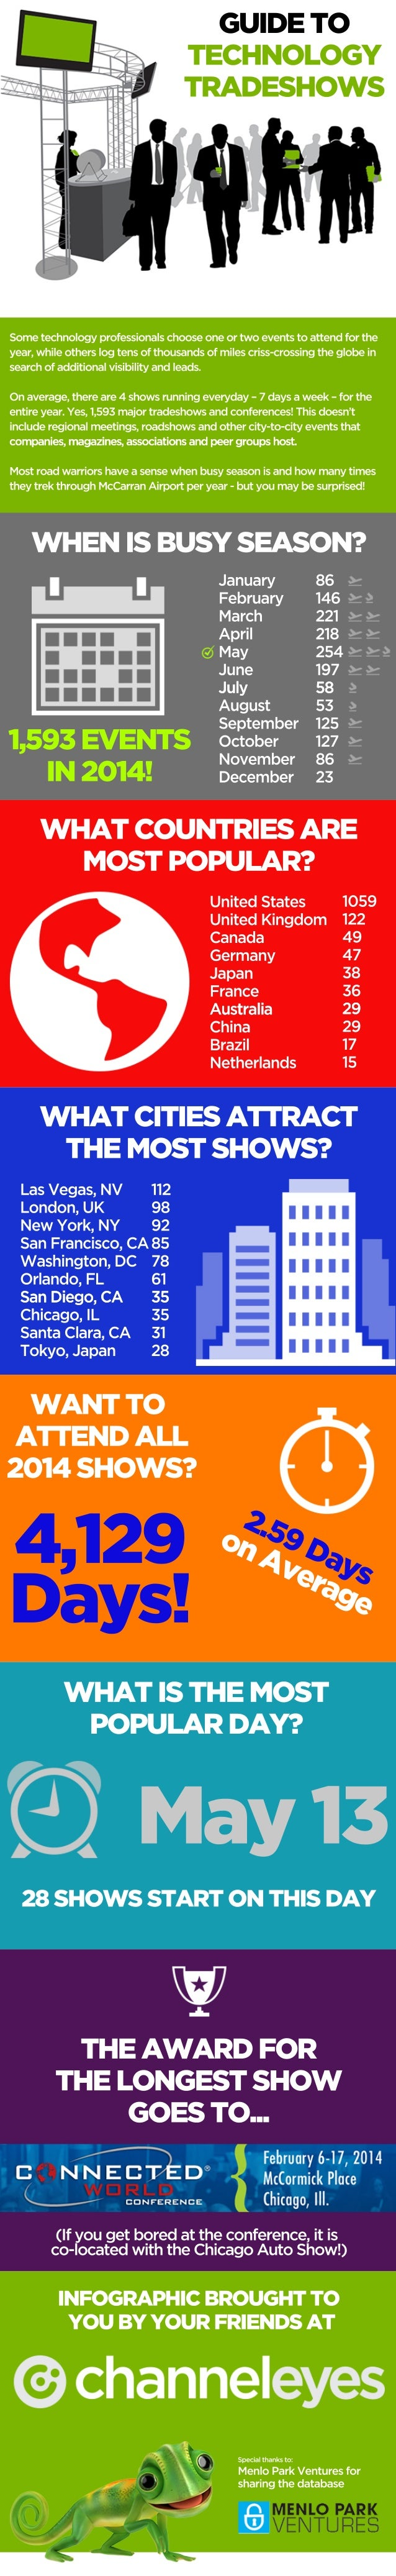 Infographic: Guide to Technology Tradeshows